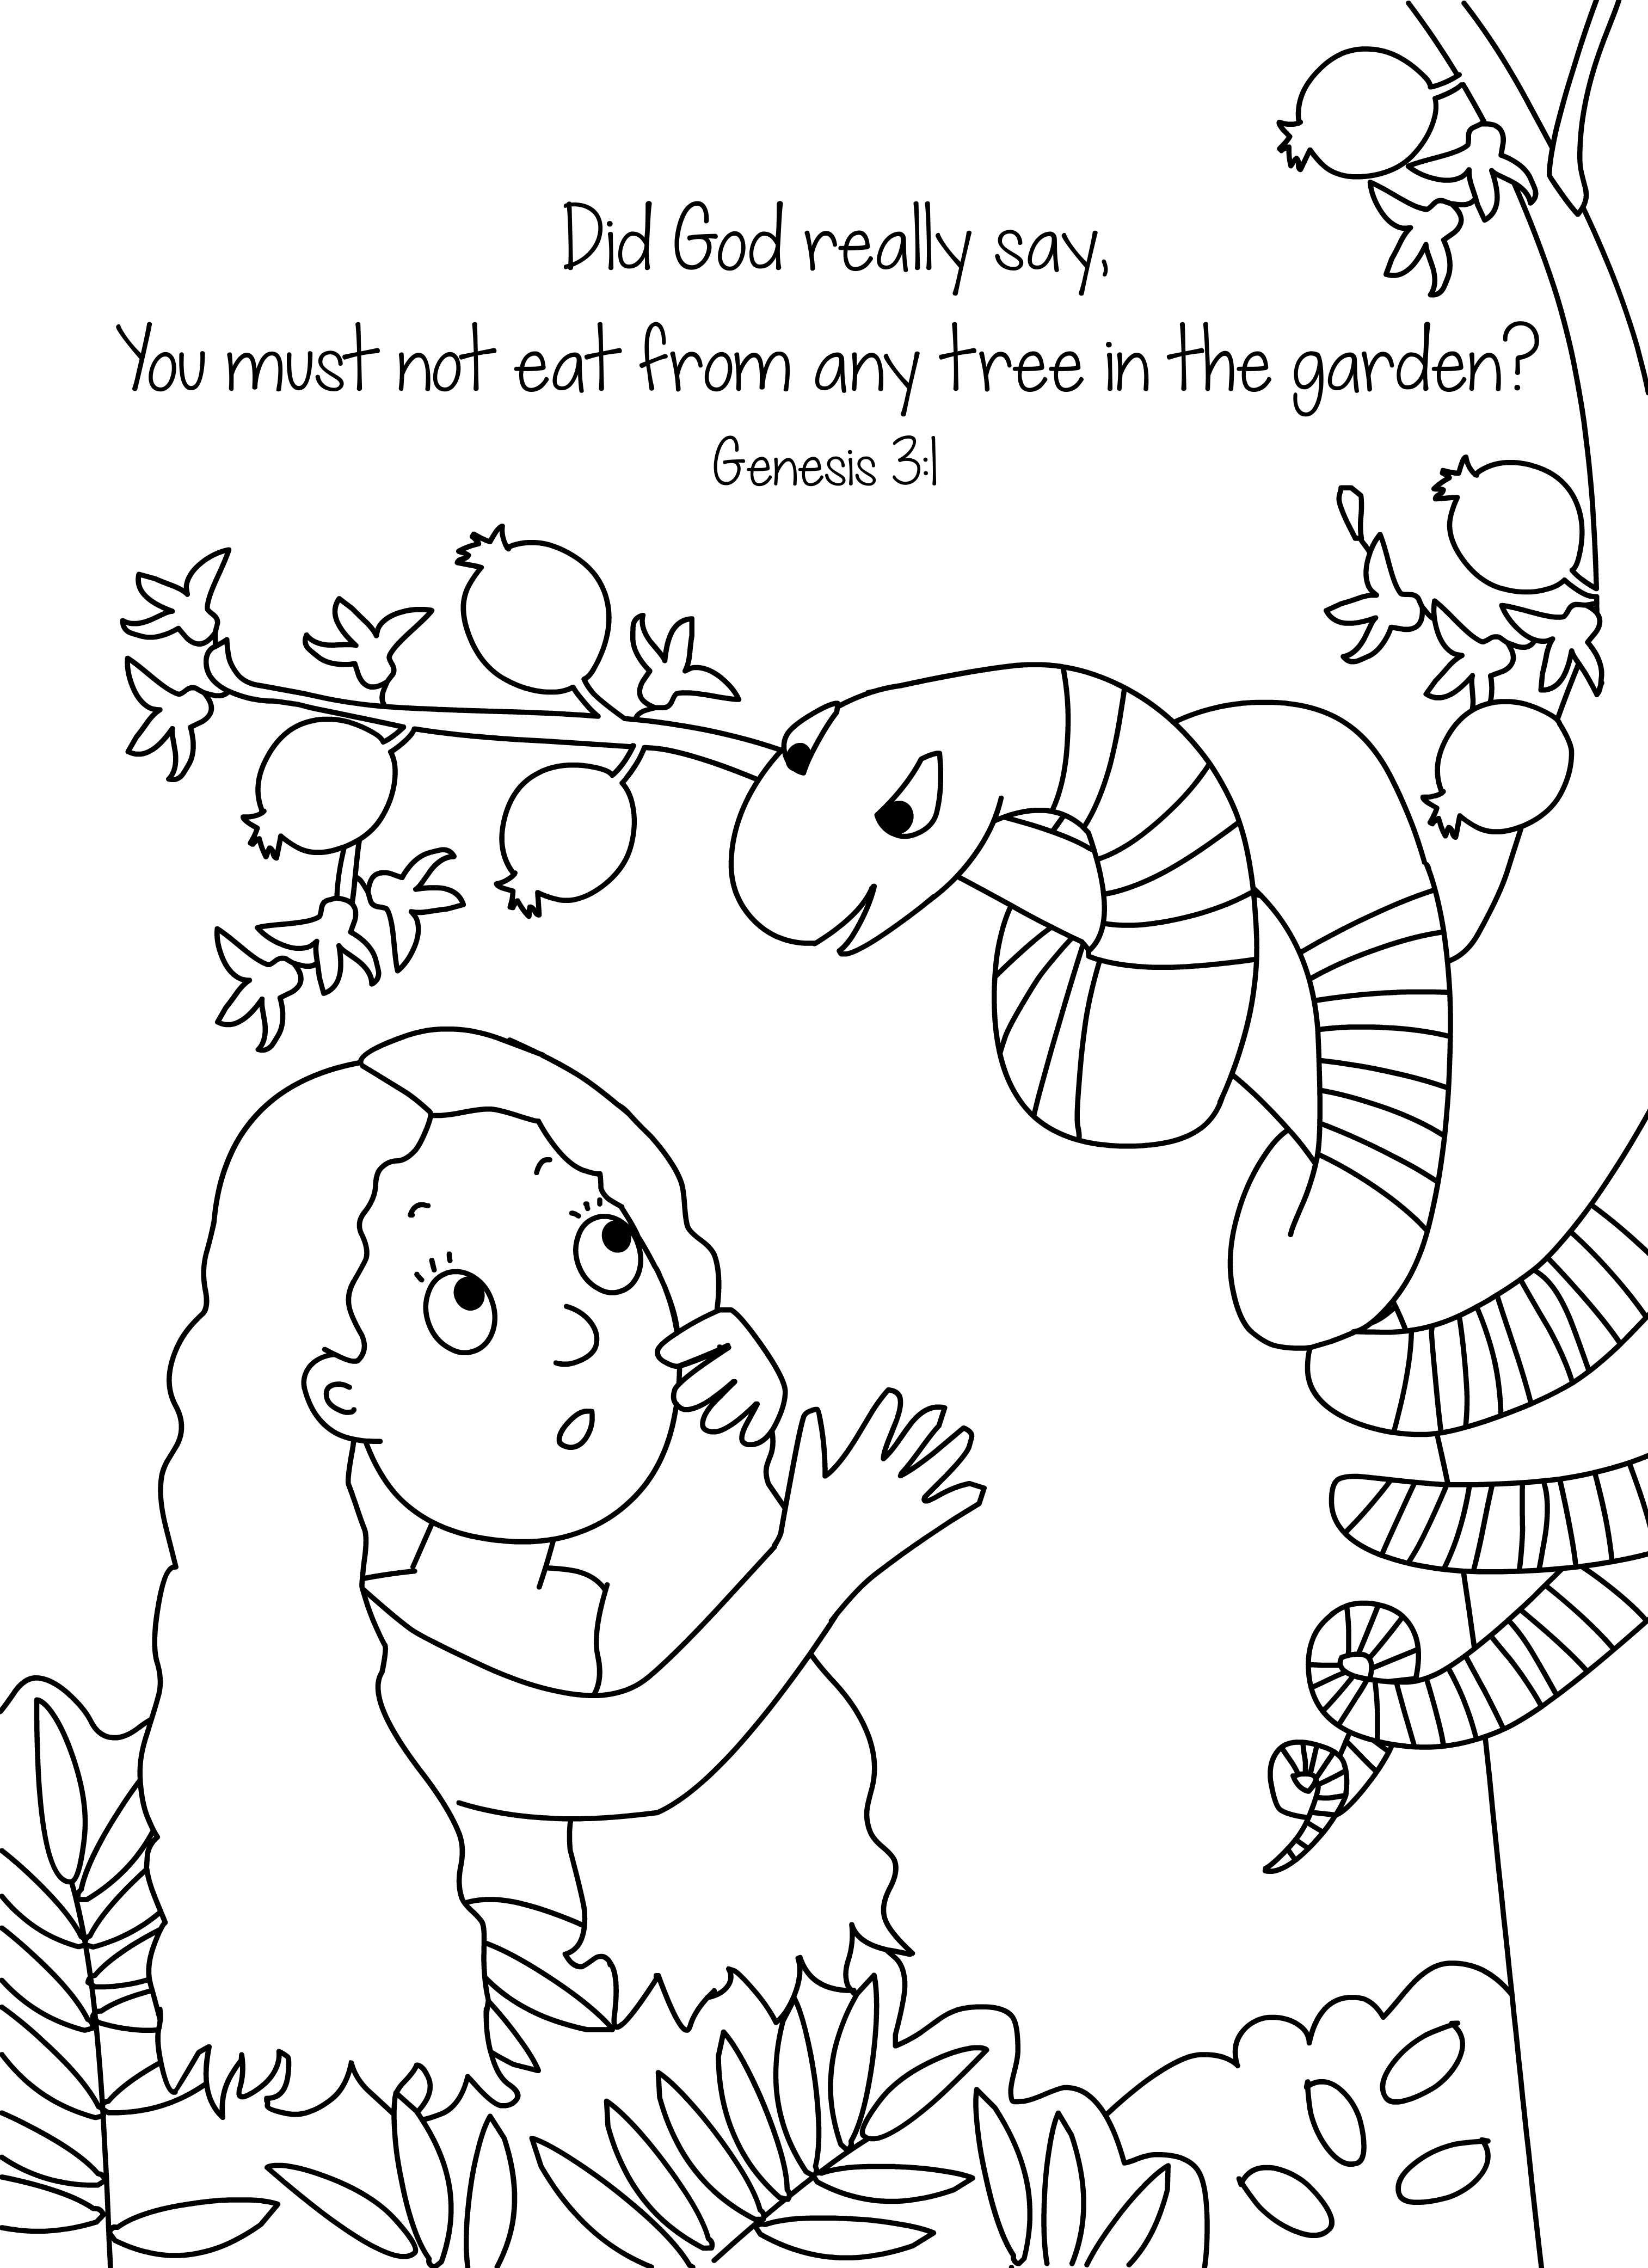 Sneaky Snake Bible Coloring Page Free Download | Key Part Of